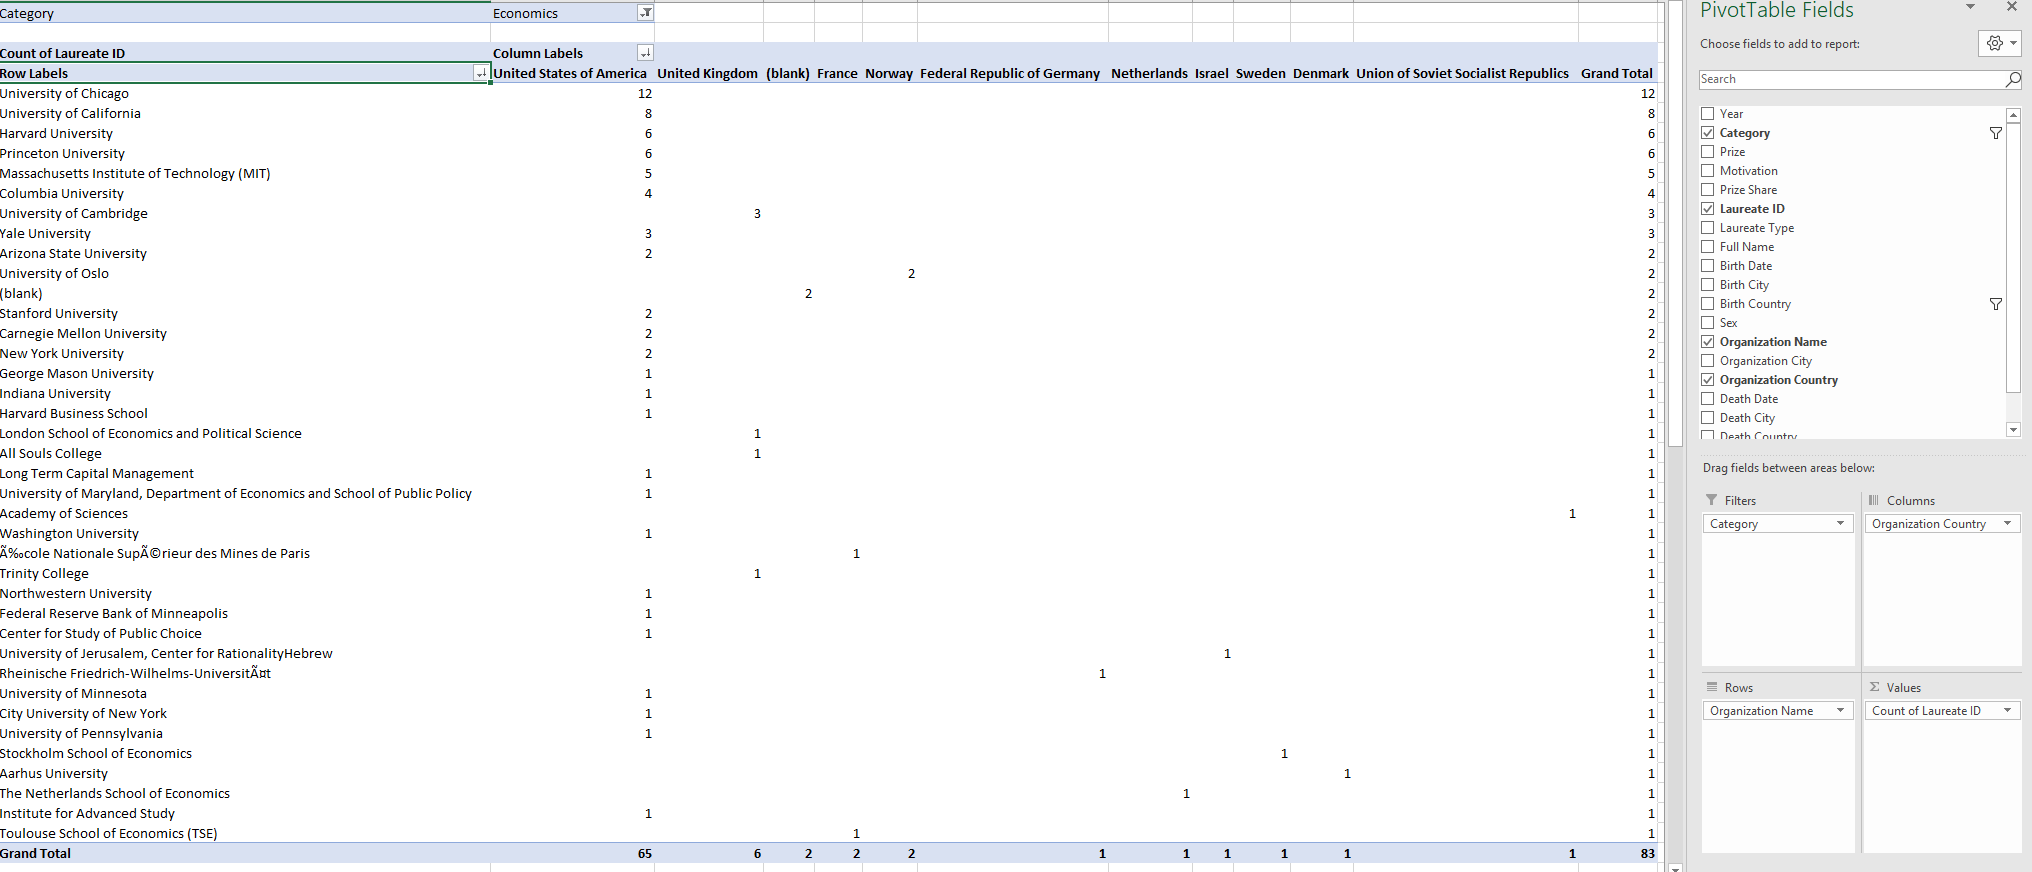 Image of PivotTable with Nobel laureate data from Kaggle